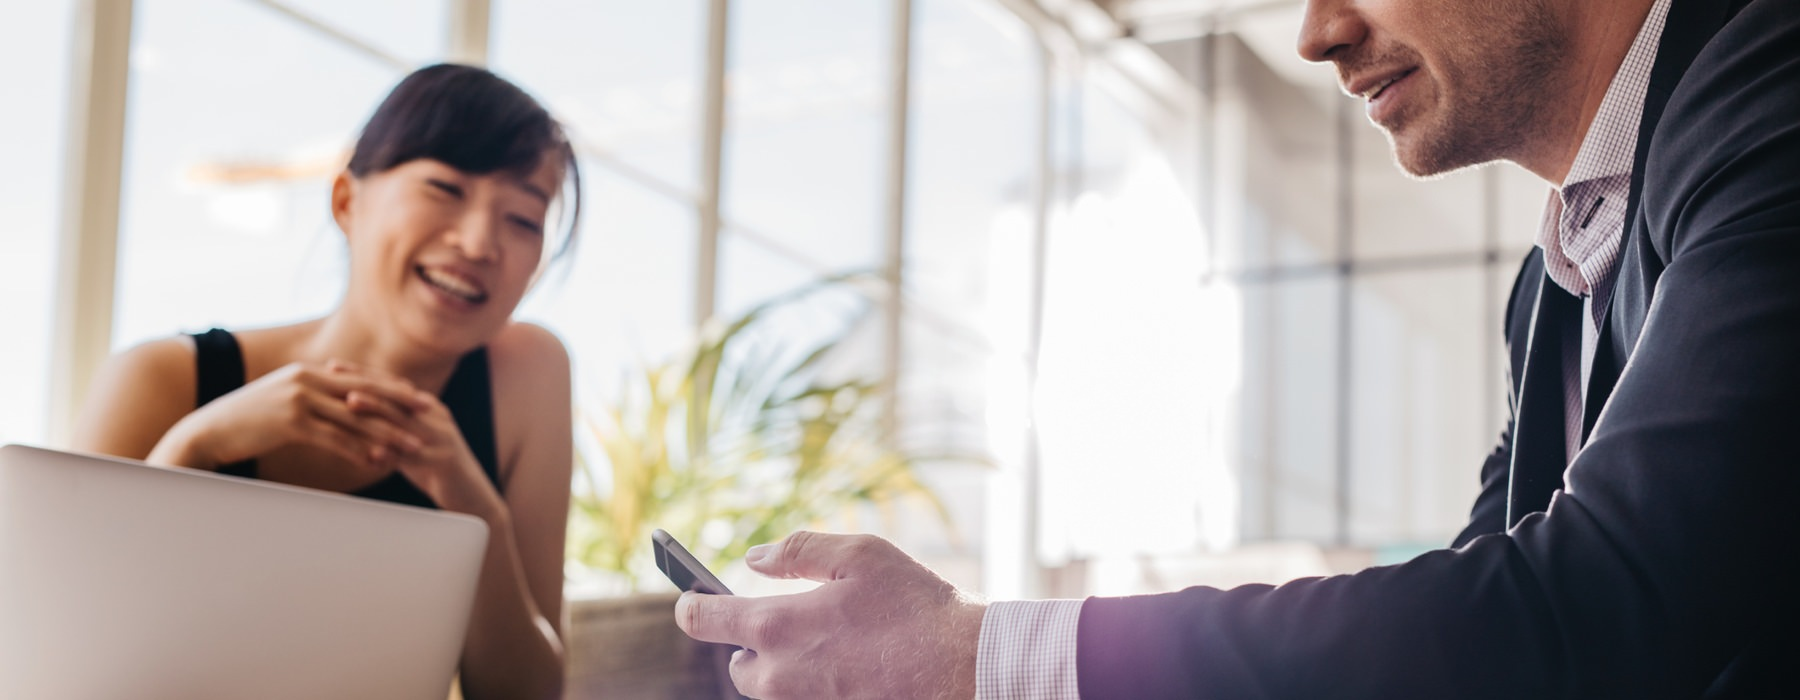 business woman and man with laptop and phone meet in front of large, bright windows